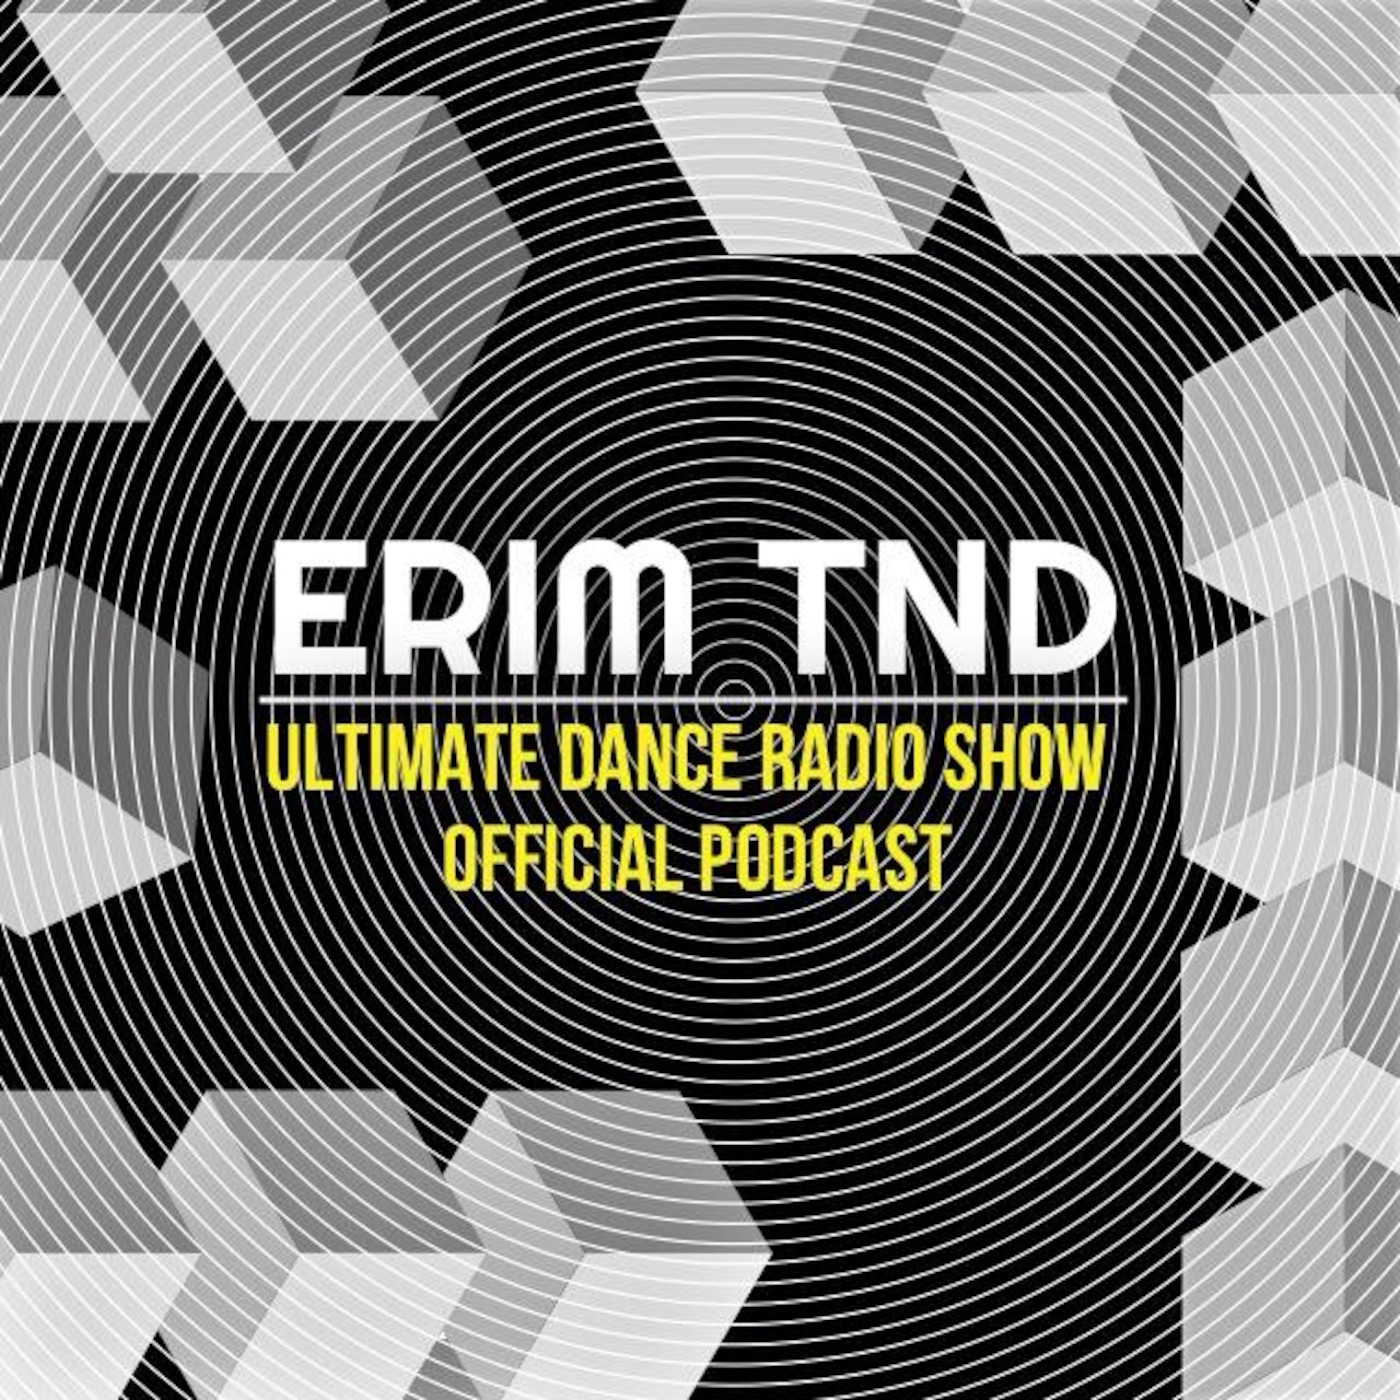 ERIM TND | Ultimate Dance Radio Show